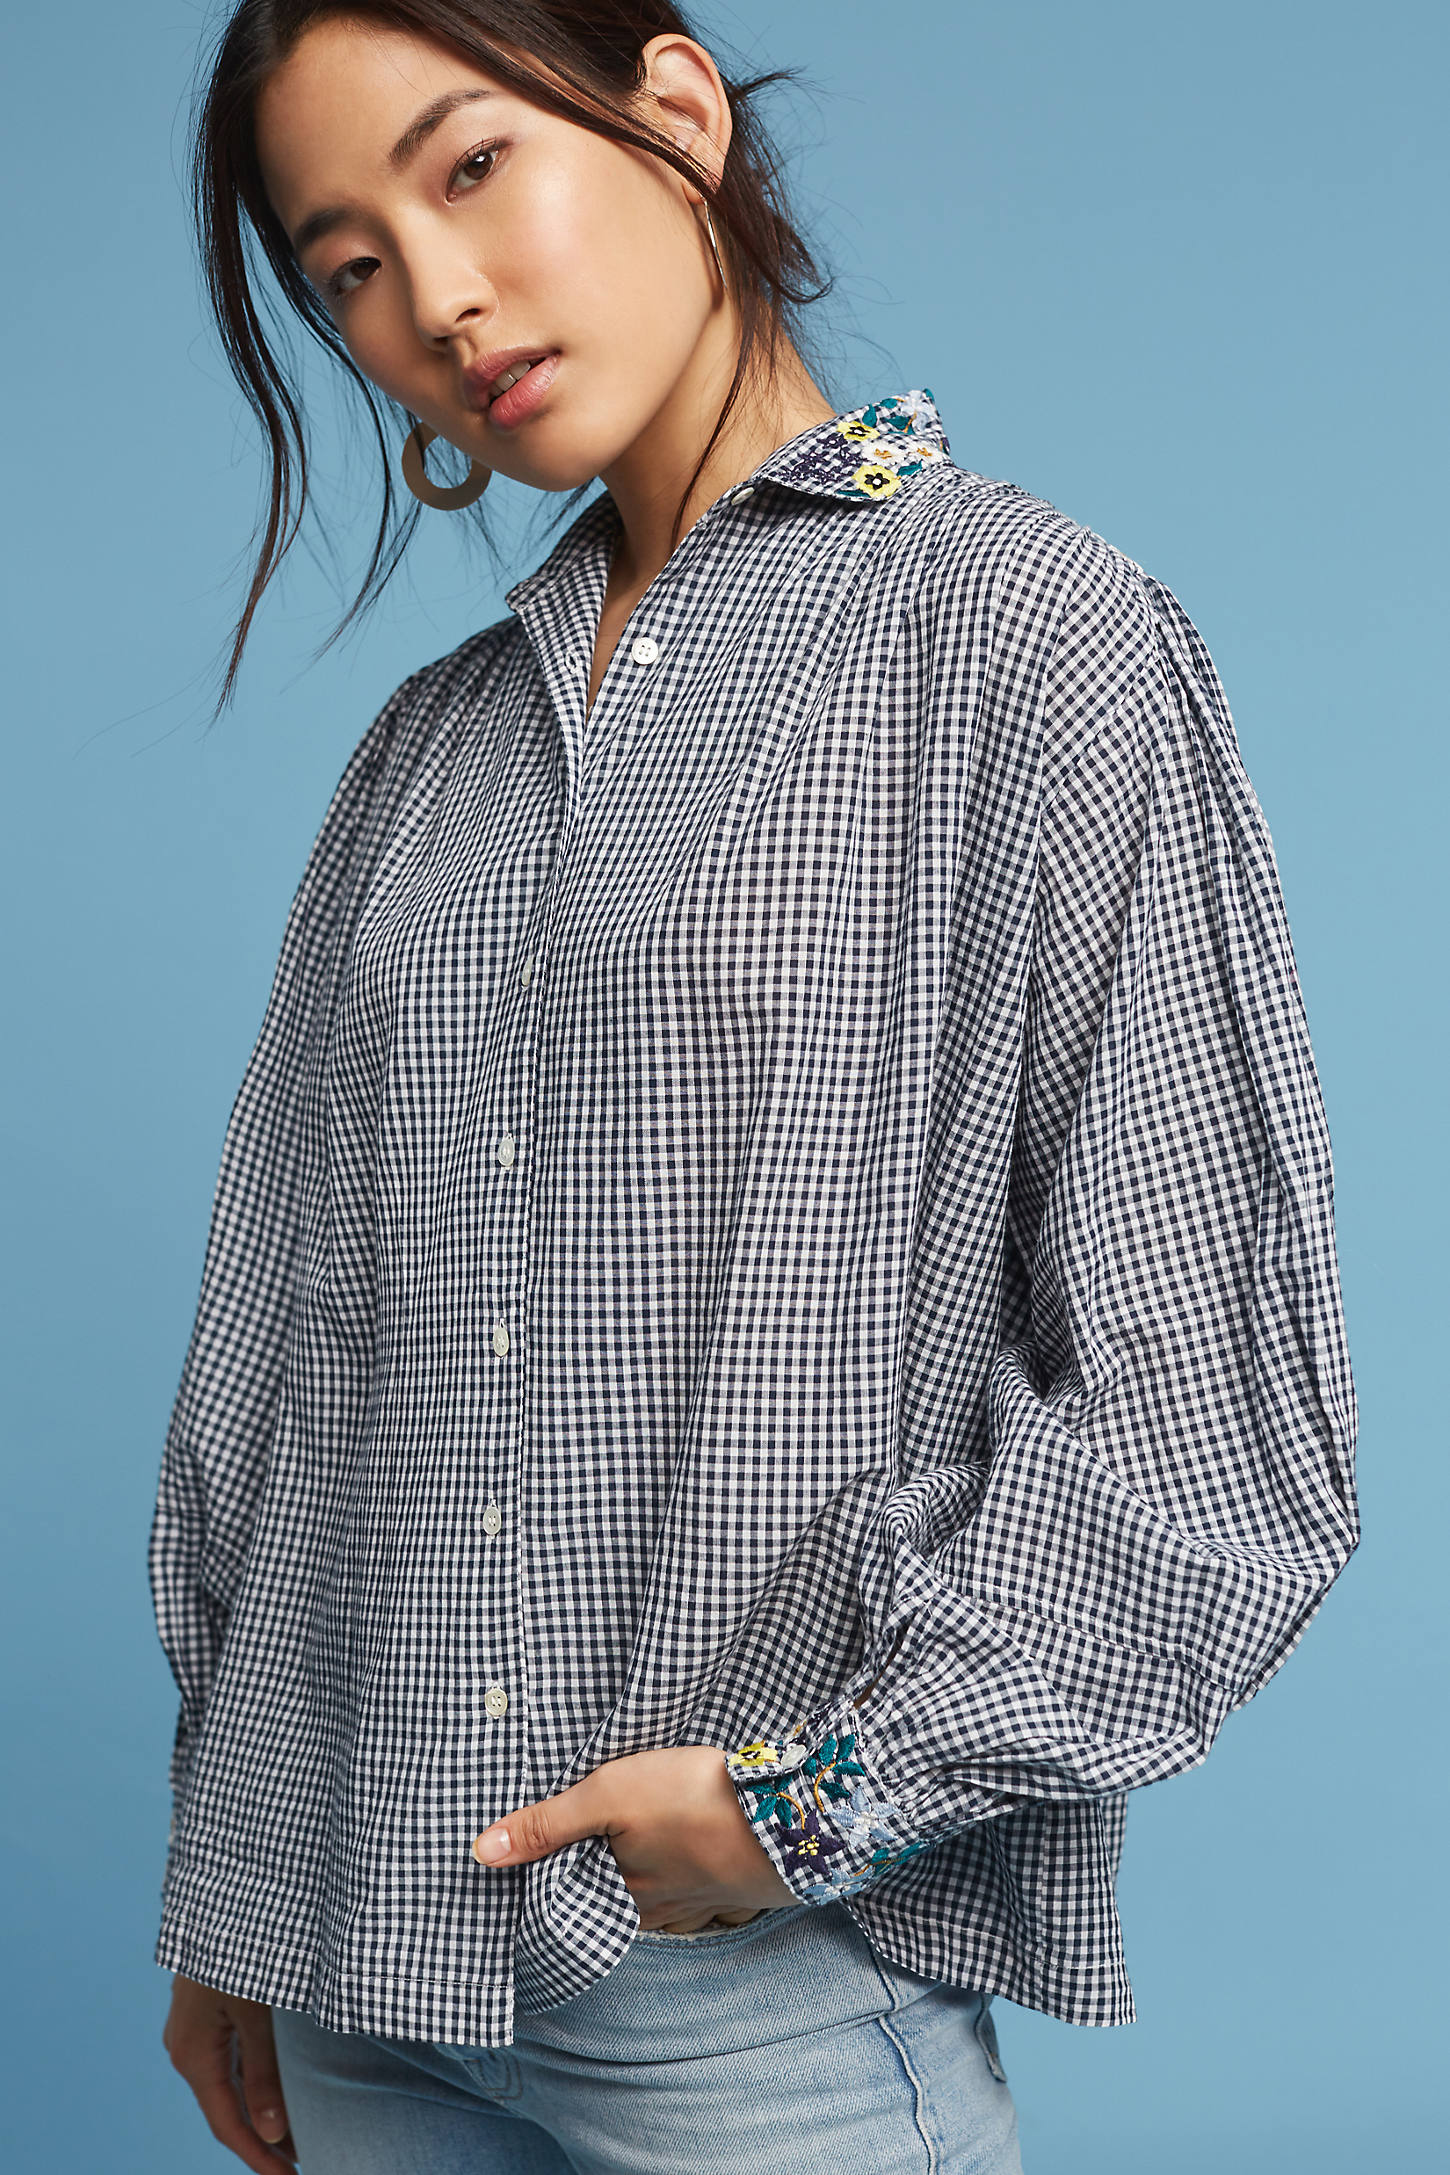 Embroidered Florals Gingham Top